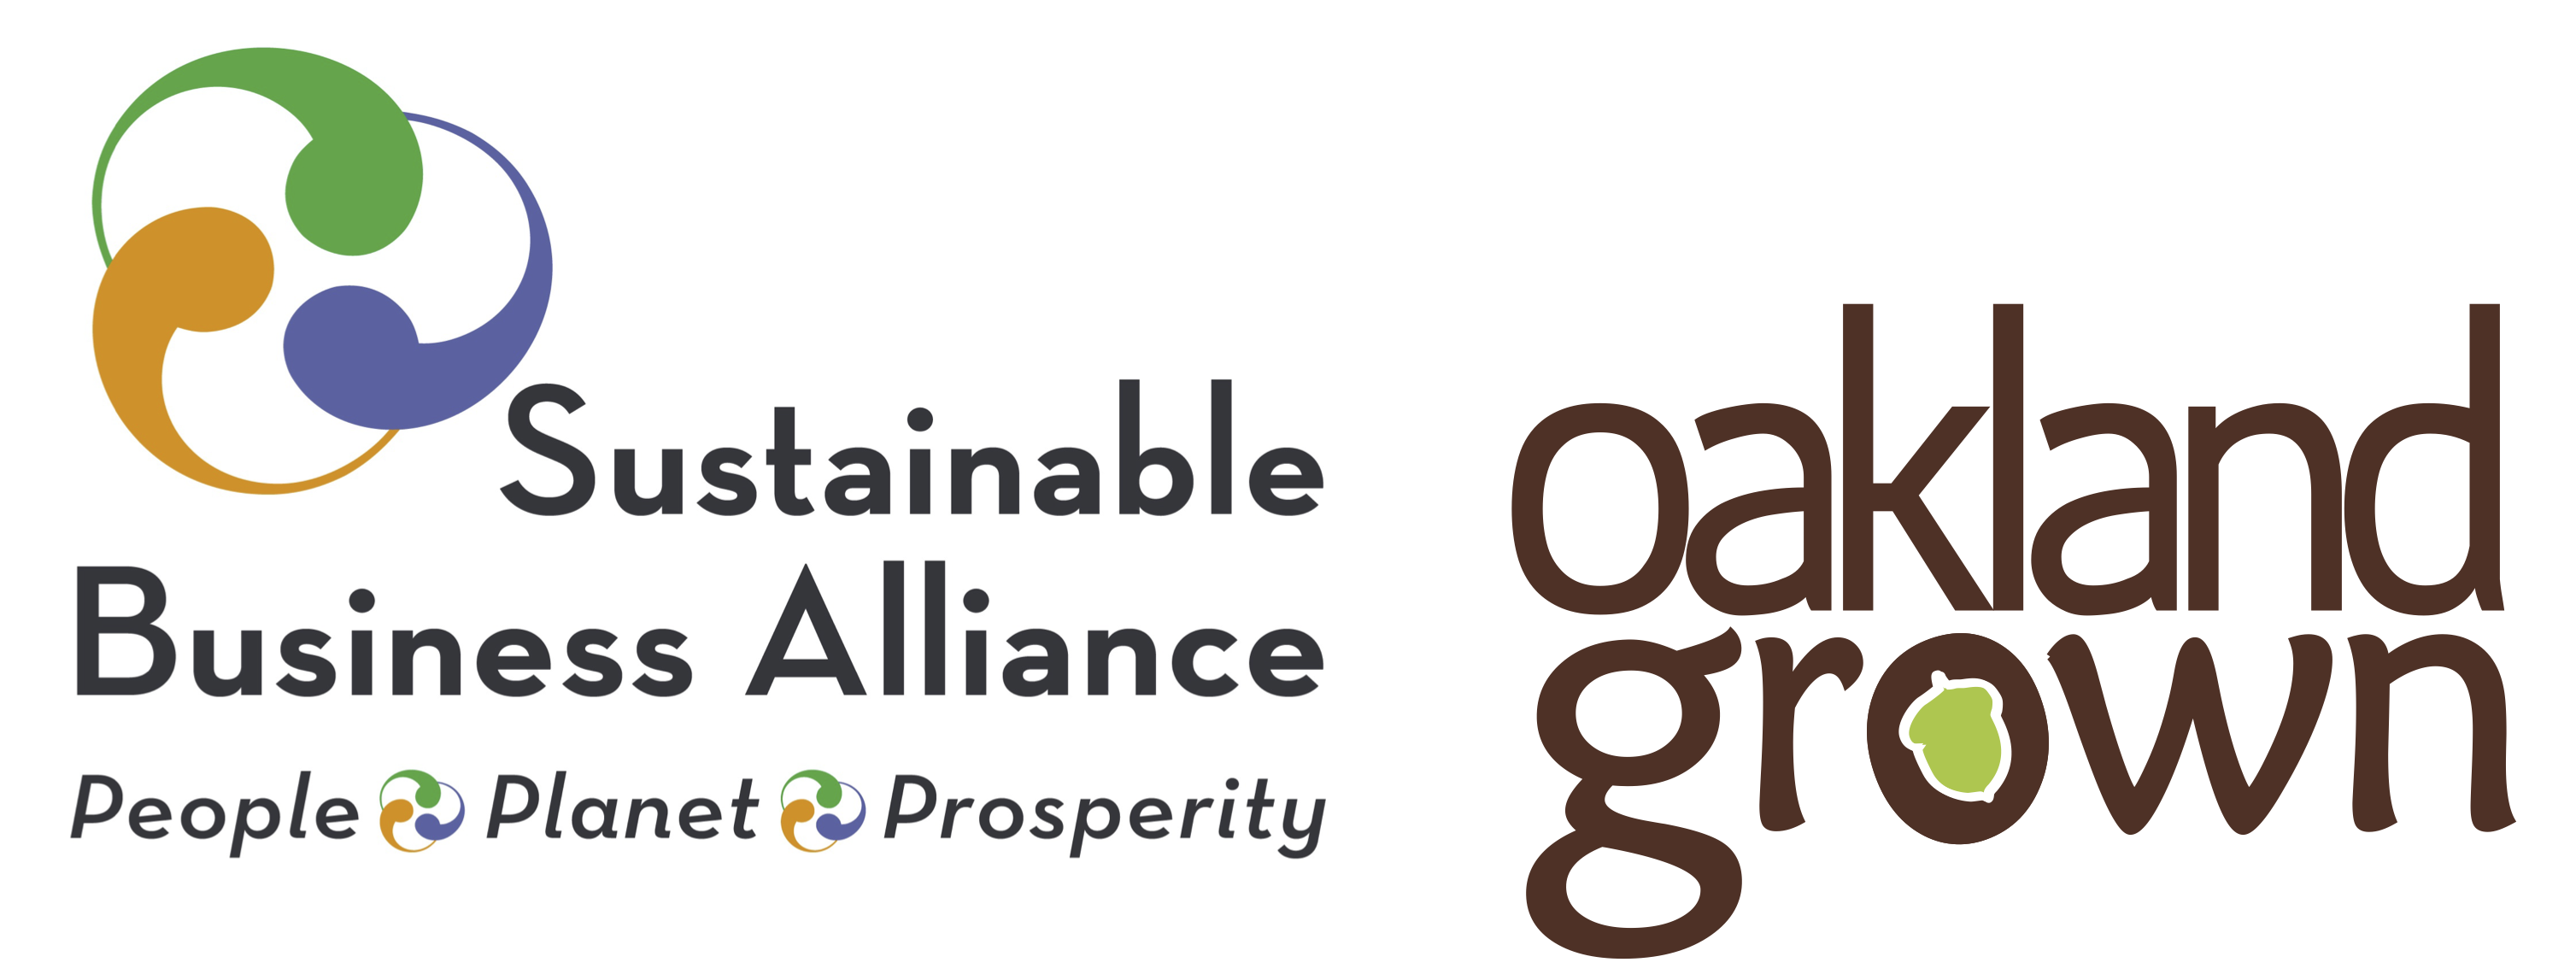 Sustainable Business Alliance and Oakland Grown